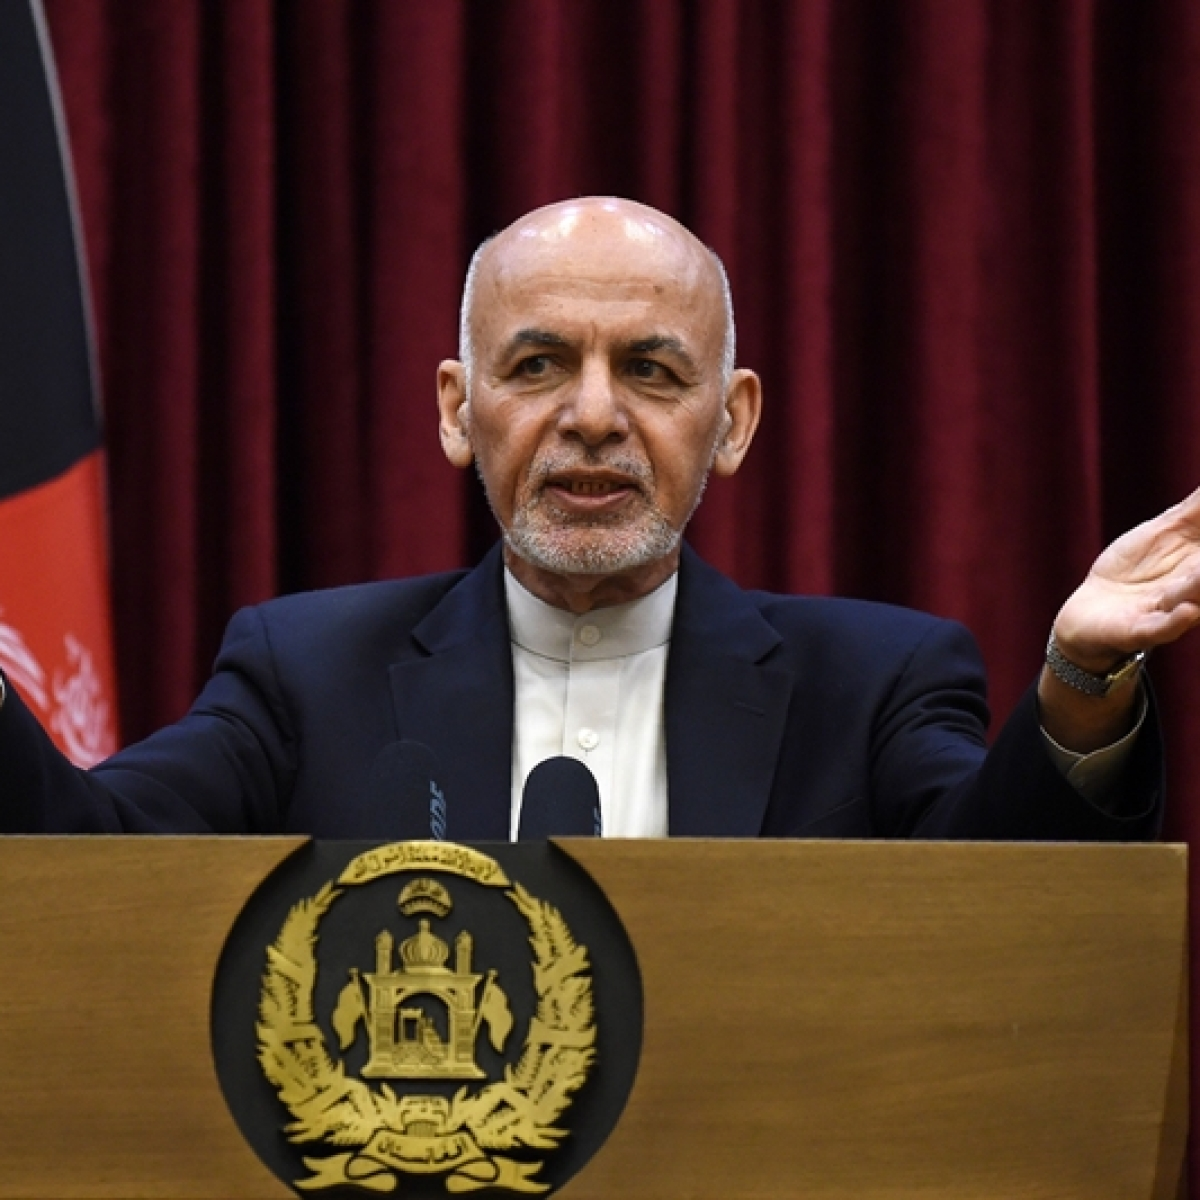 Afghanistan government to release 5,000 Taliban prisoners if violence eases